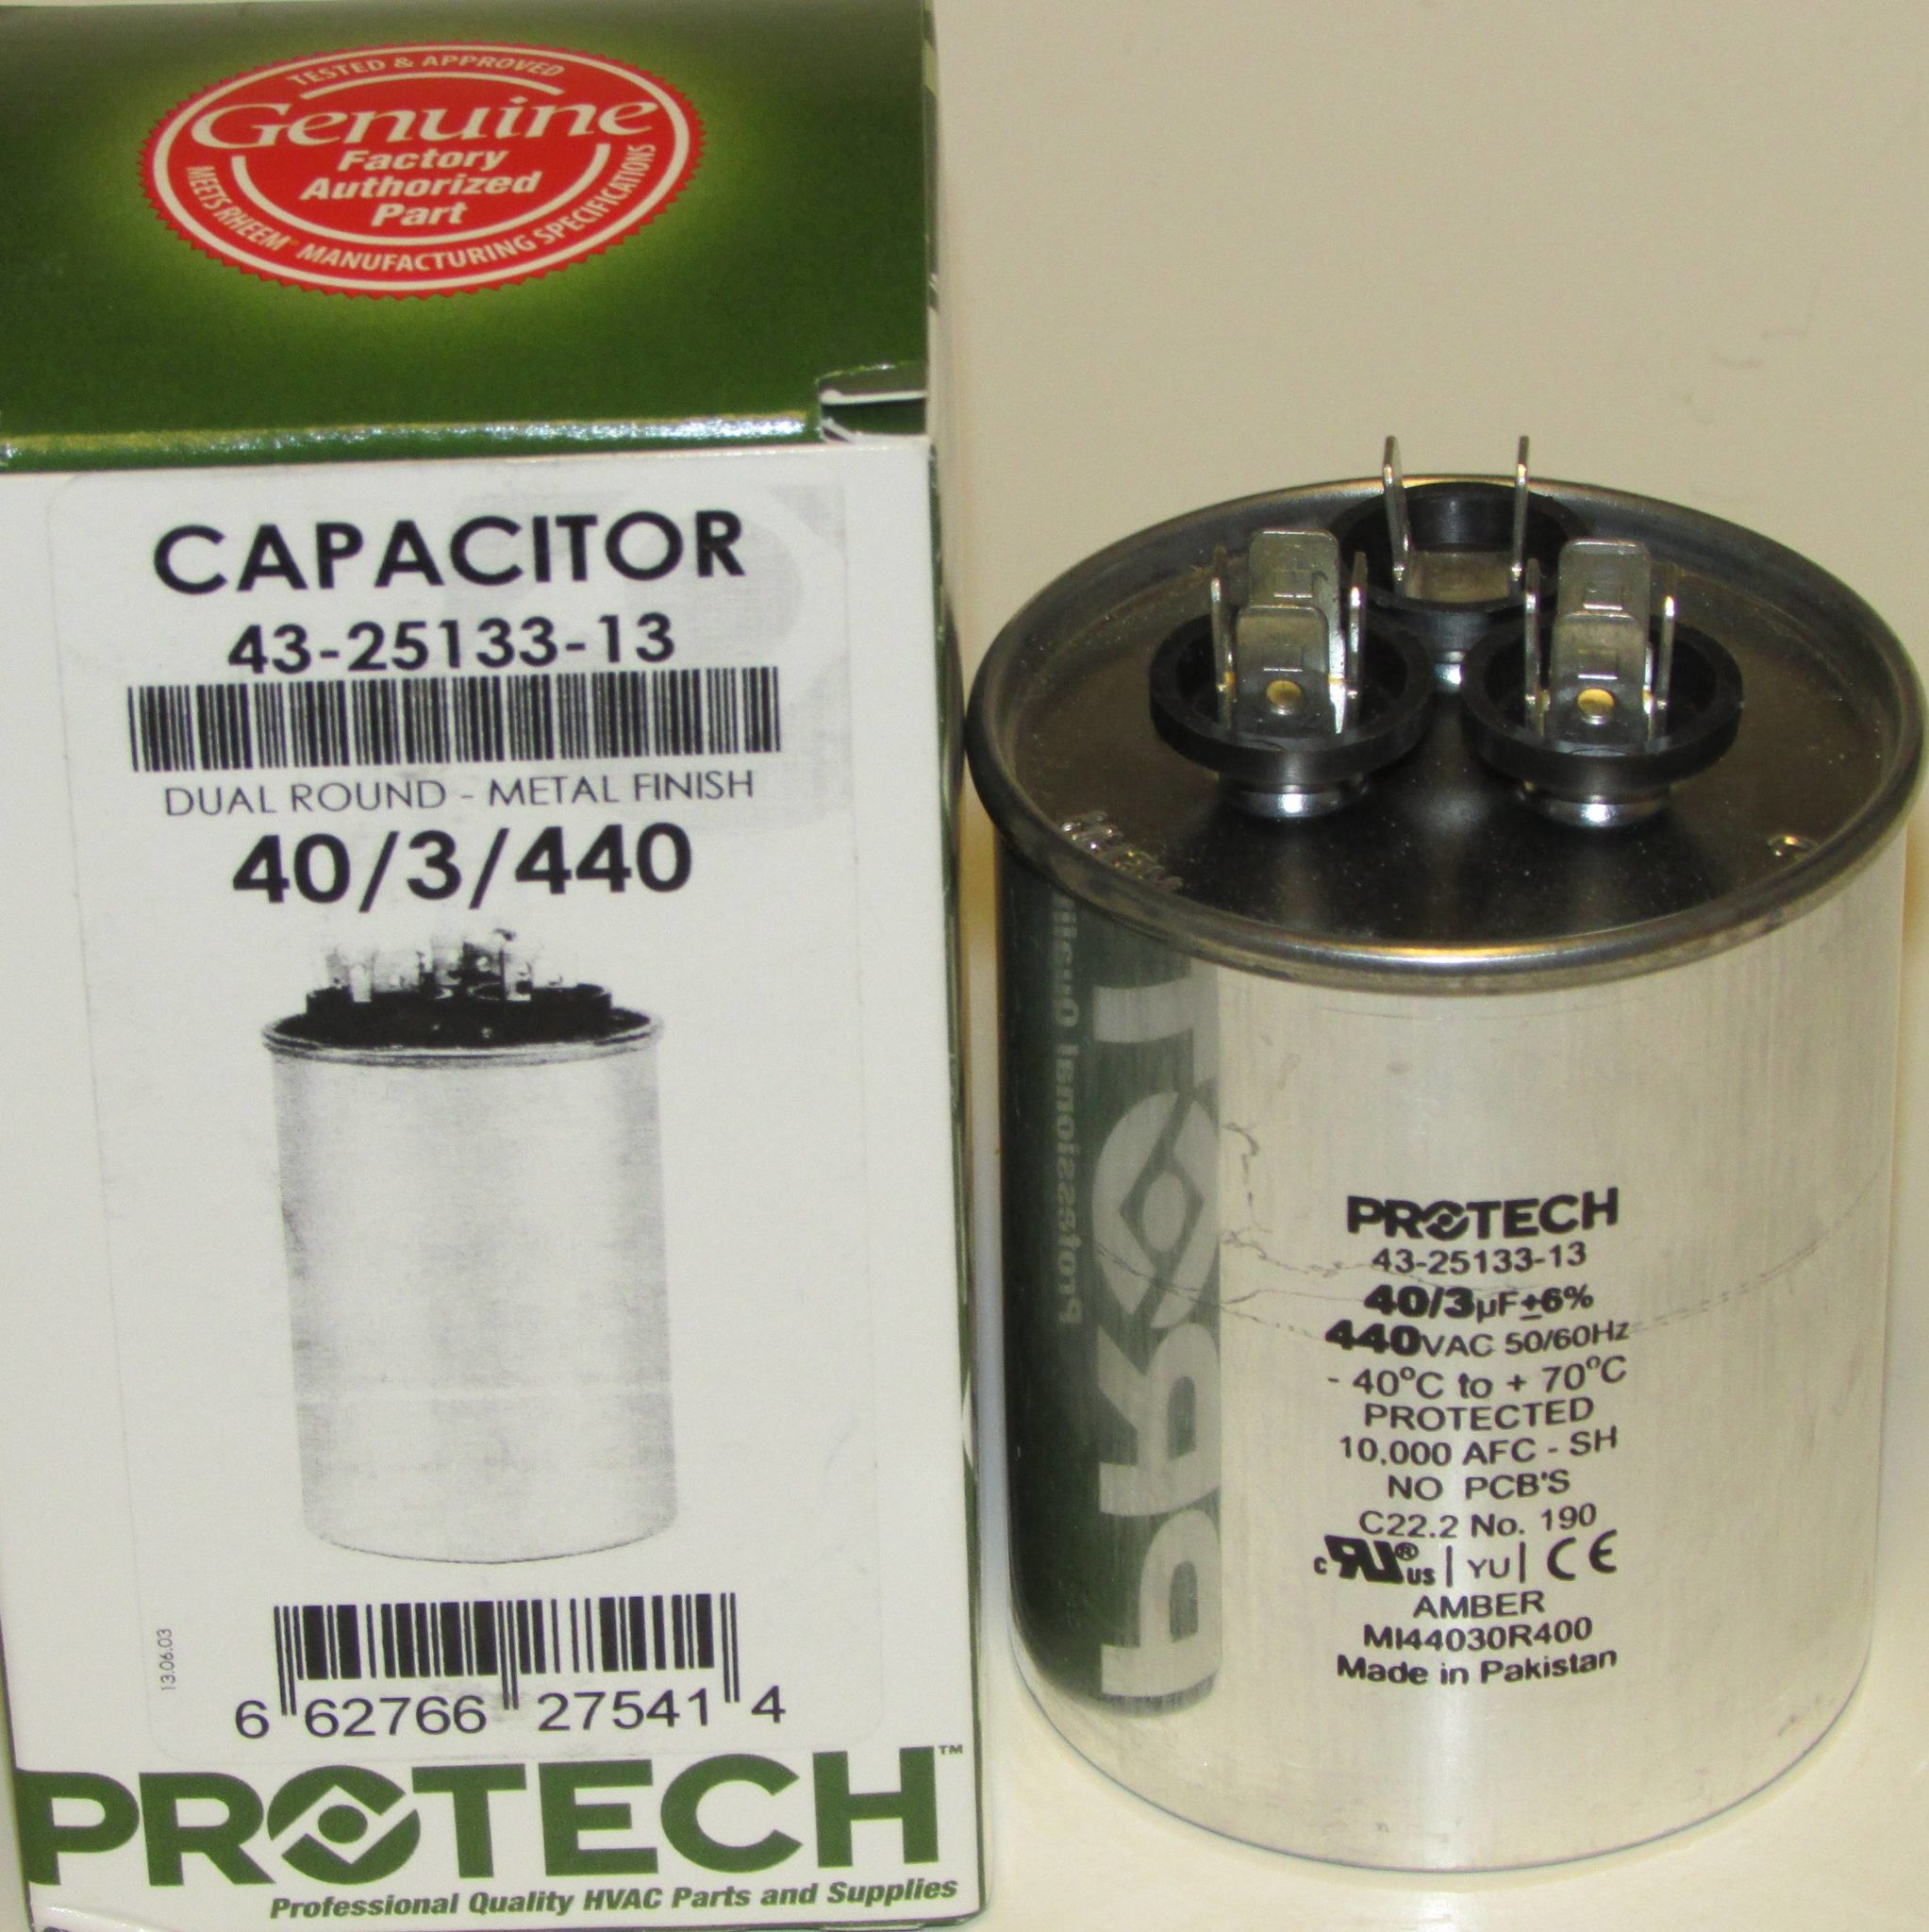 Ac Dual Capacitor 43 25133 05 Wiring Diagram 44 Pro Tech 403 Mfd 440 Protech Where Is Air Conditioner Grihon Com Coolers Devices